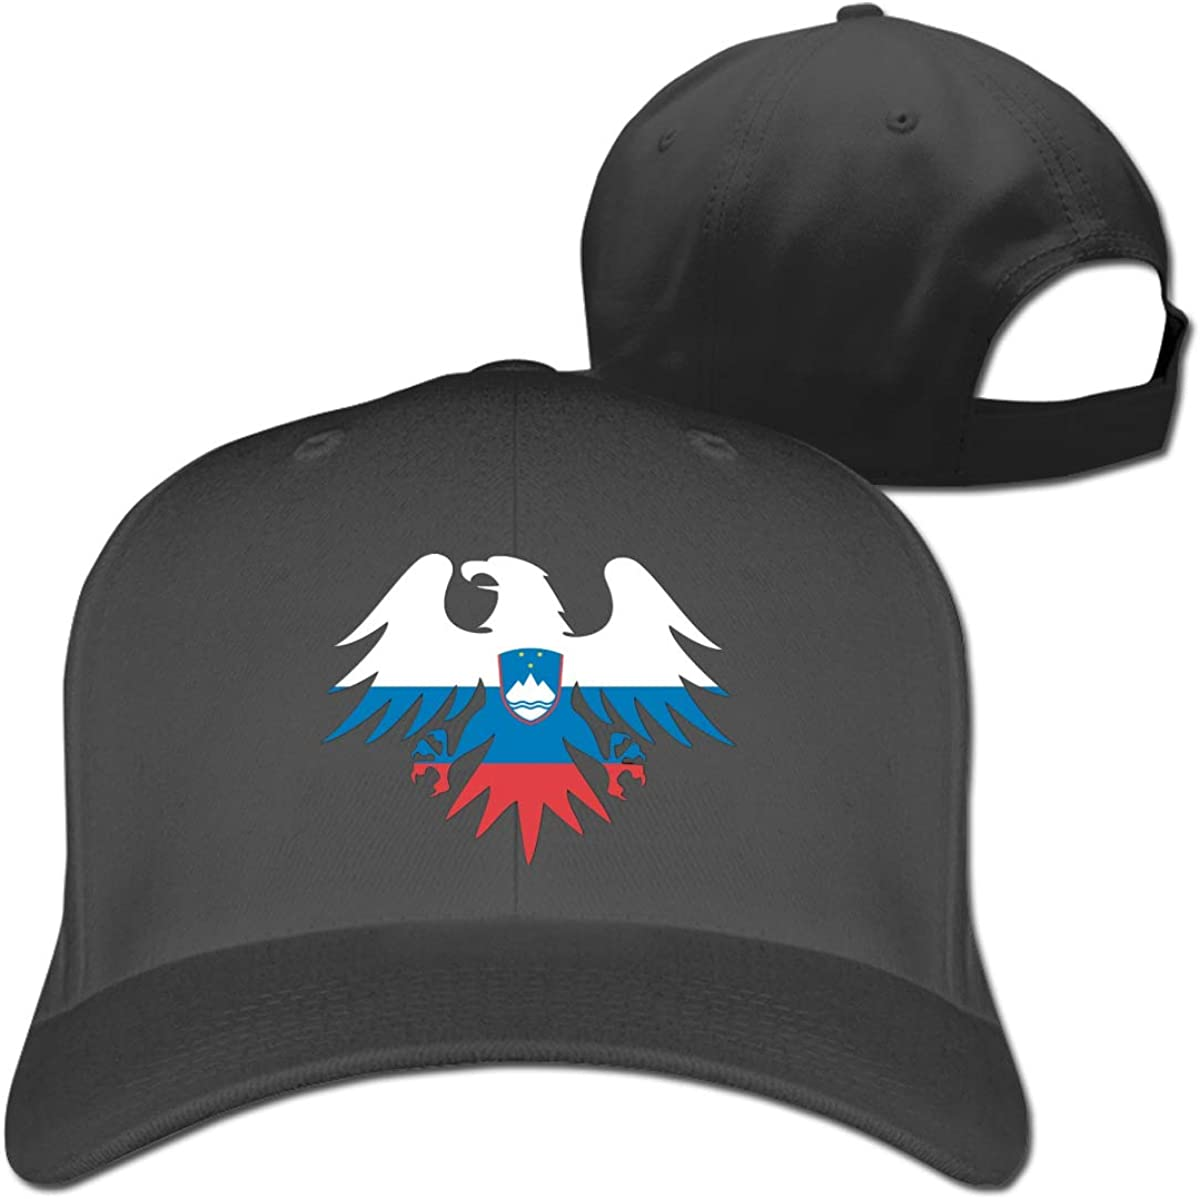 Slovenia Flag Eagle Classic Adjustable Cotton Baseball Caps Trucker Driver Hat Outdoor Cap Fitted Hats Dad Hat Black